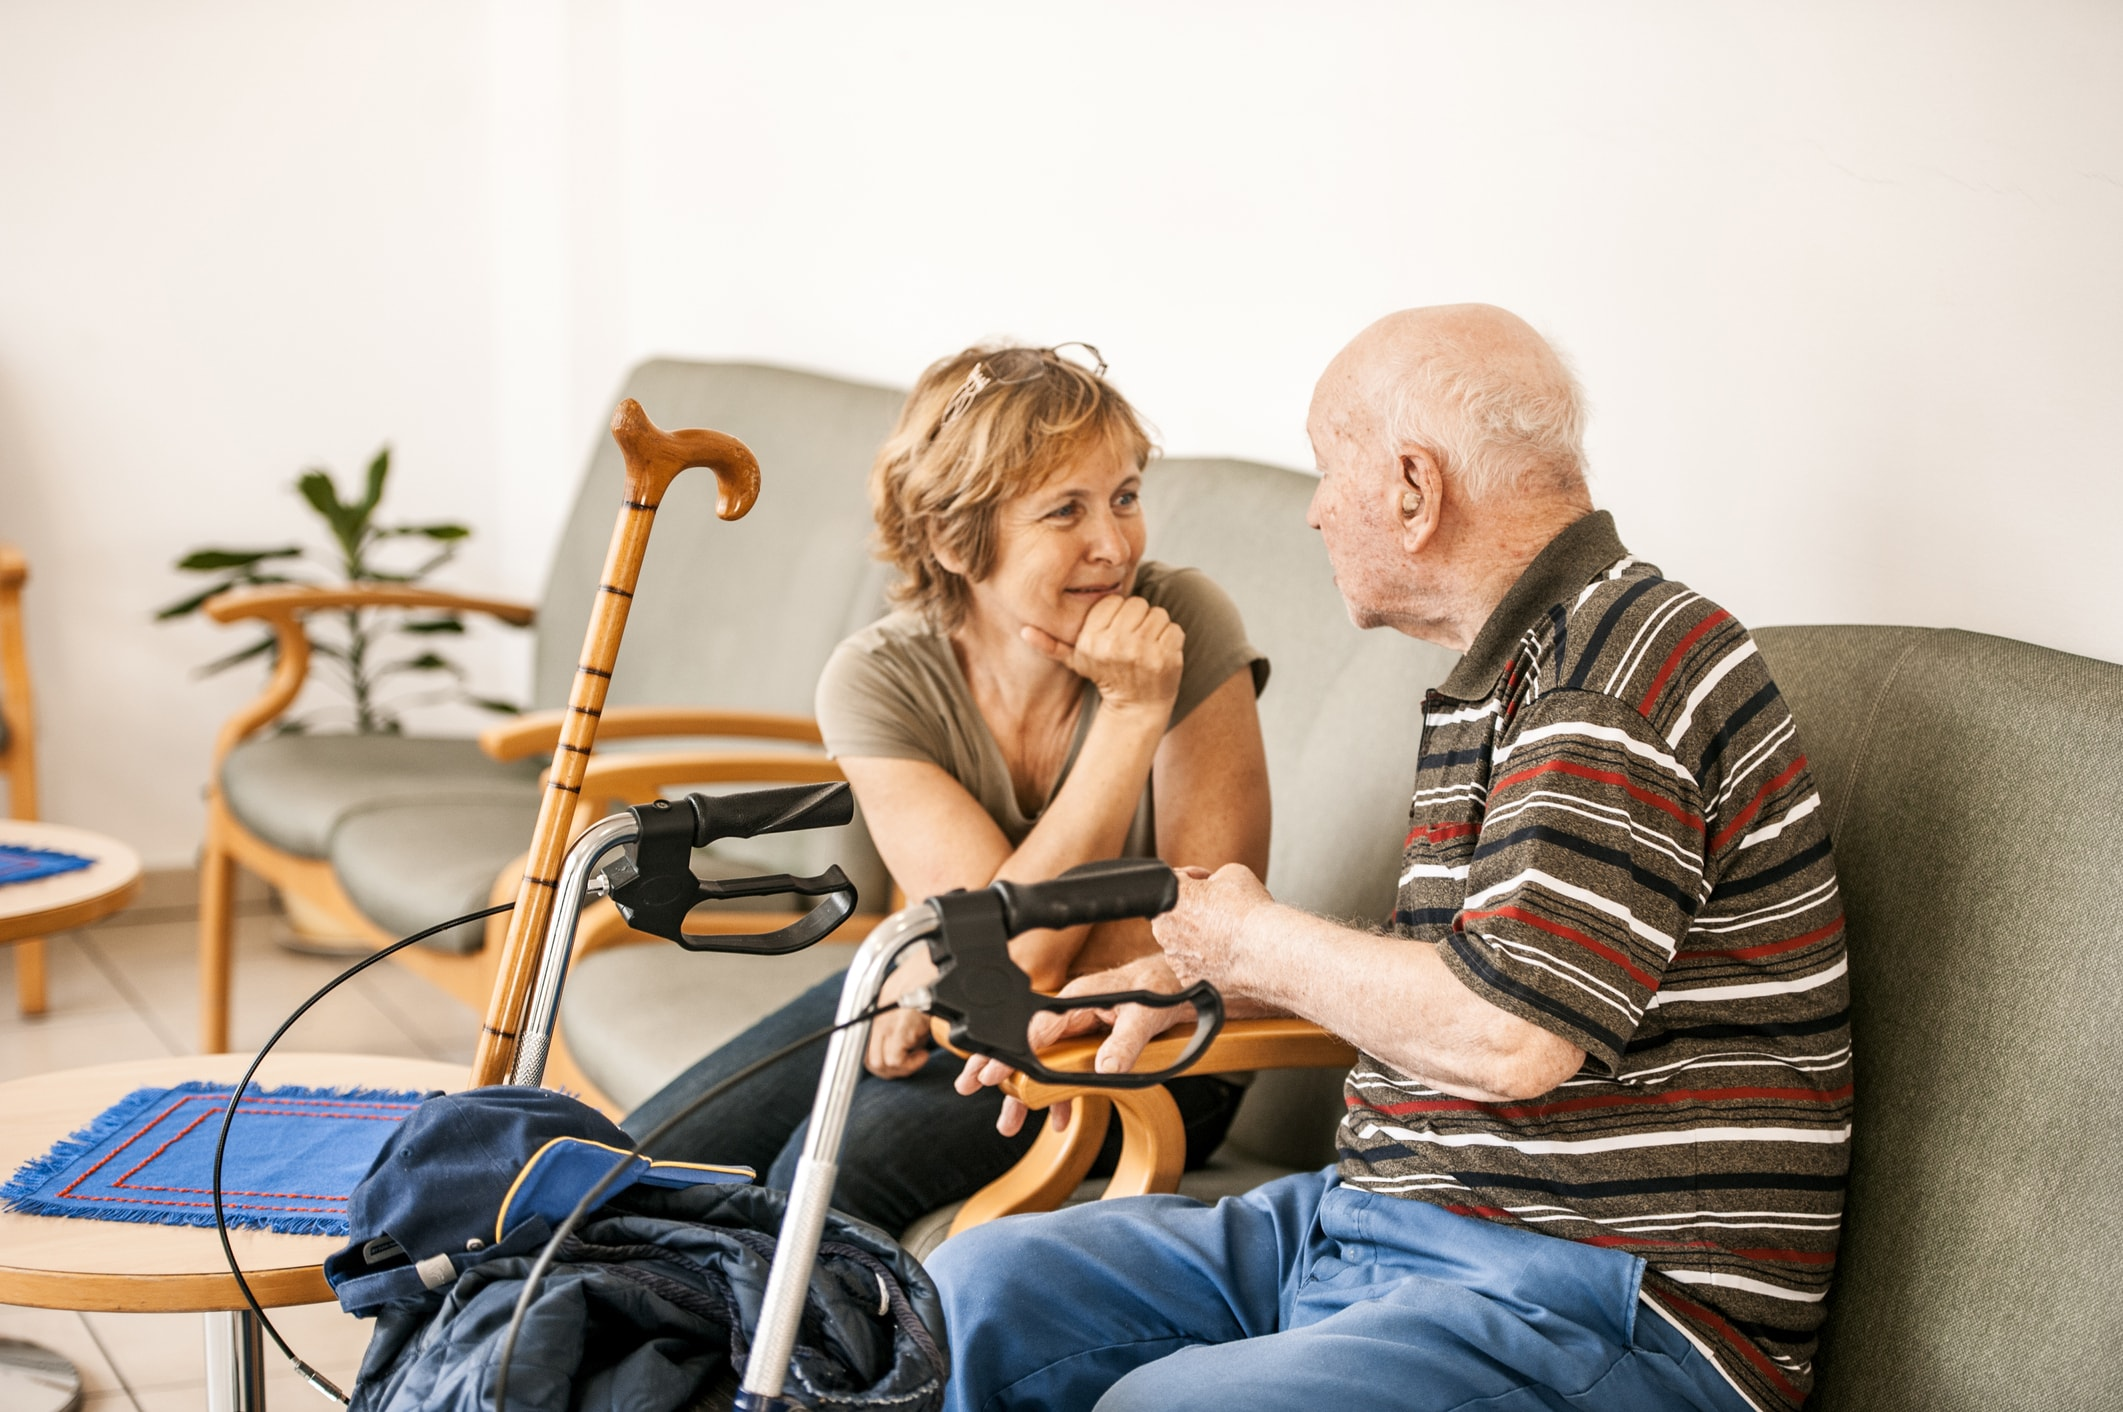 Elderly couple sitting on a couch having a discussion